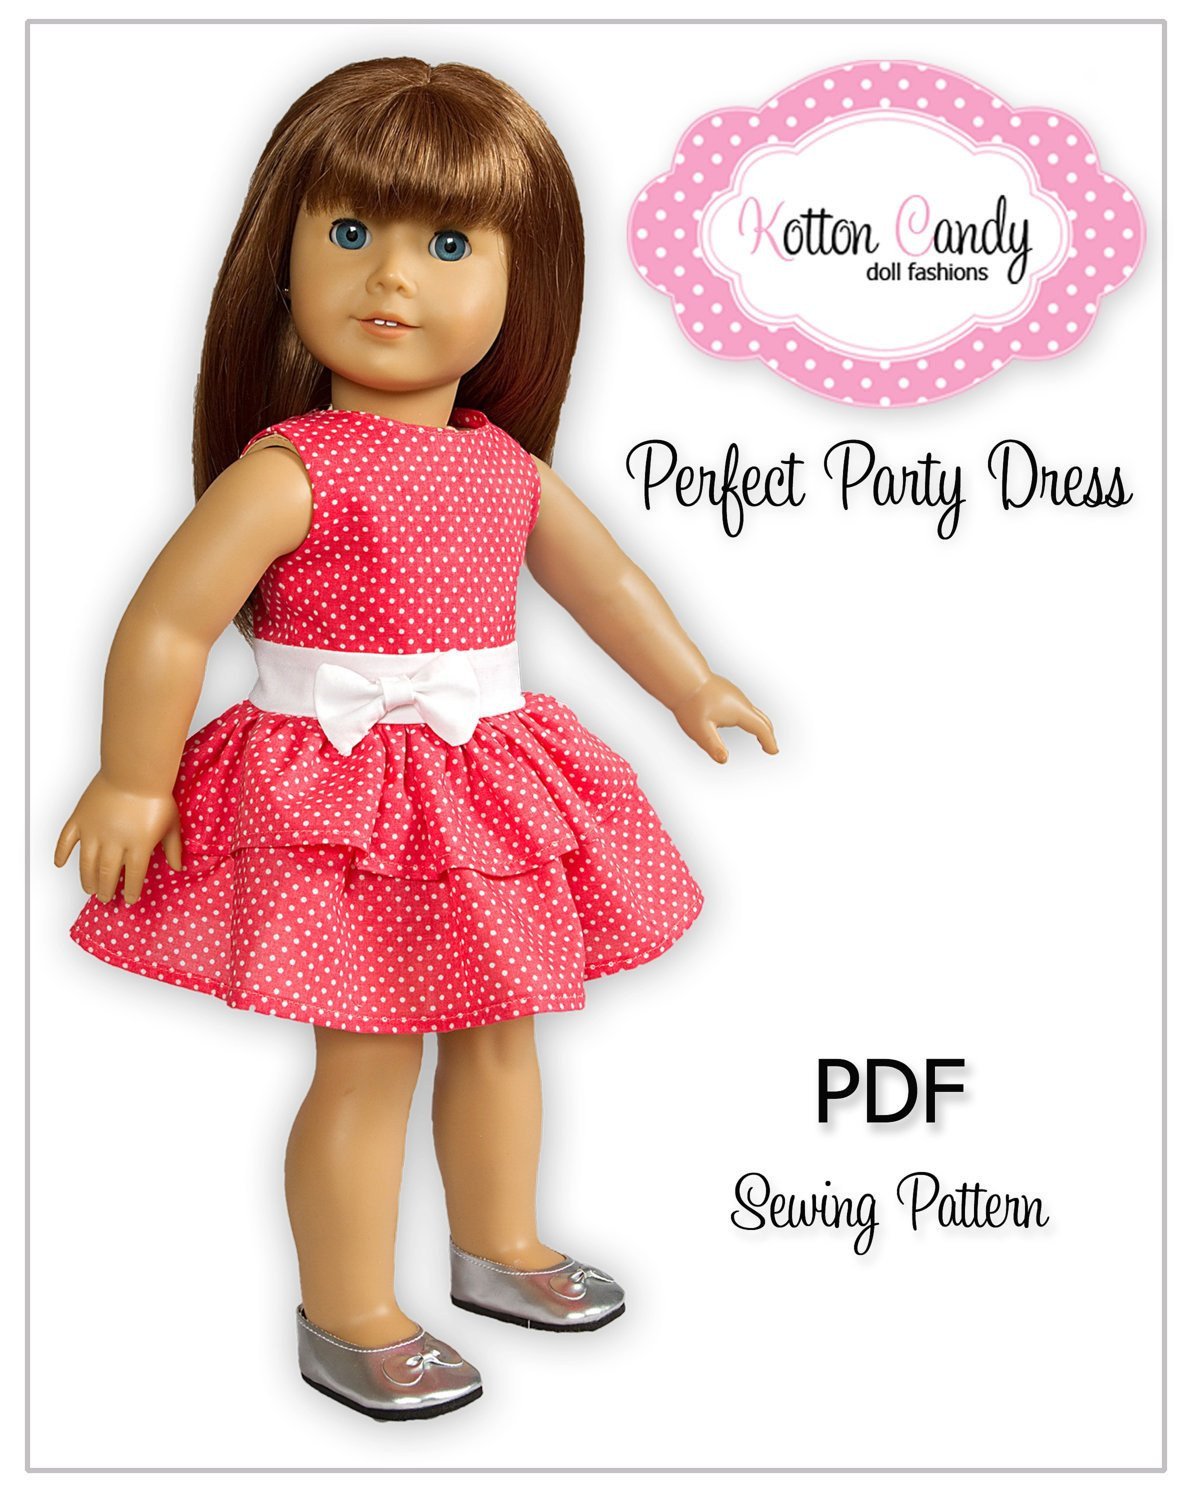 PDF Sewing Pattern for 18 Inch American Girl Doll Clothes